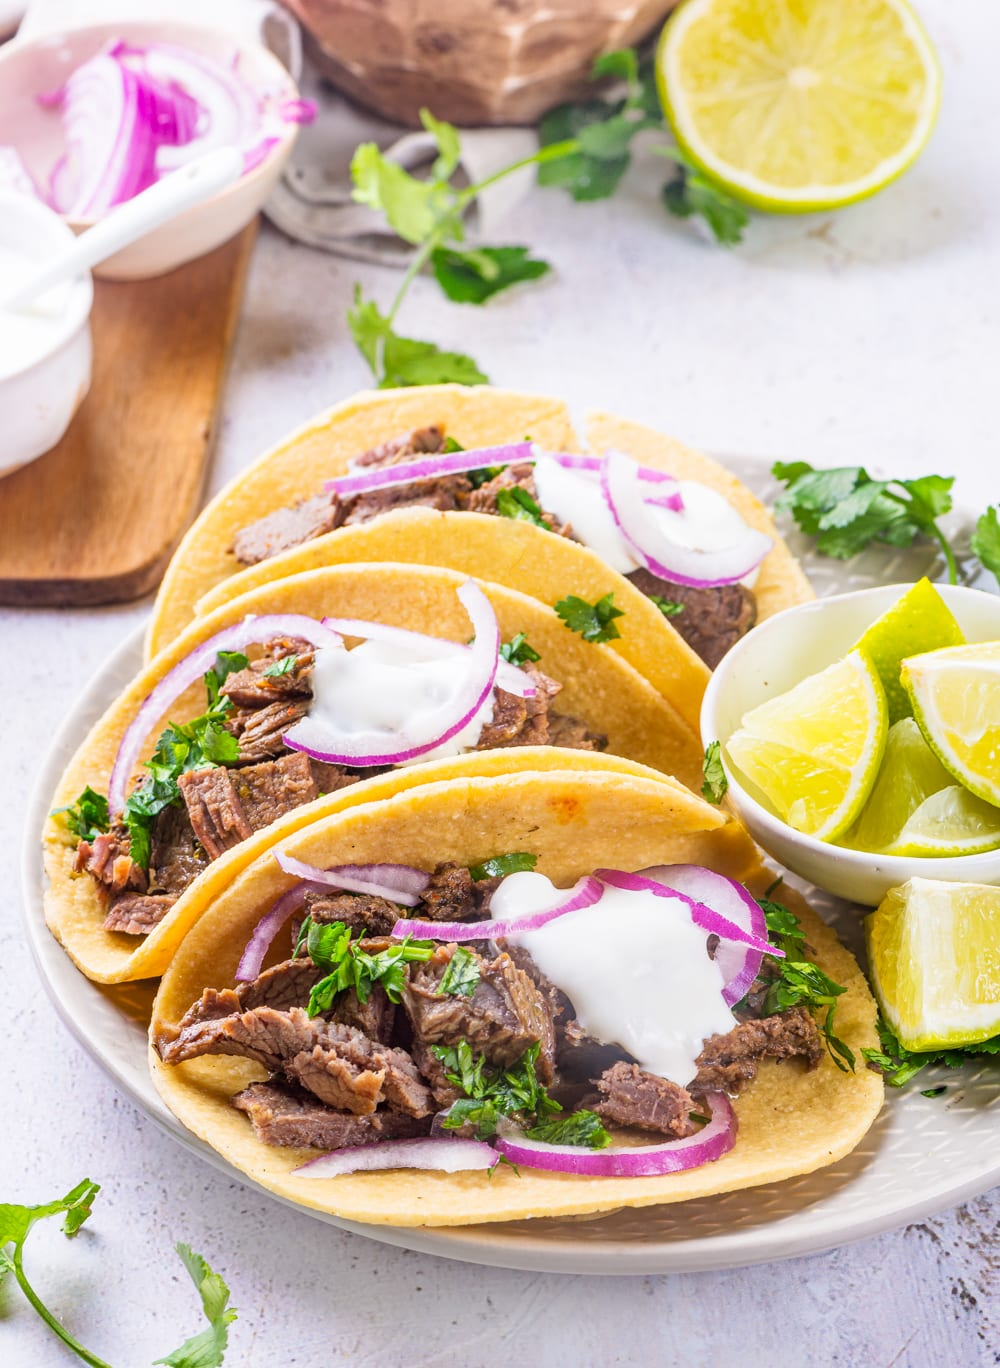 Tortillas filled with carne asada and topped with red onions and sour cream.